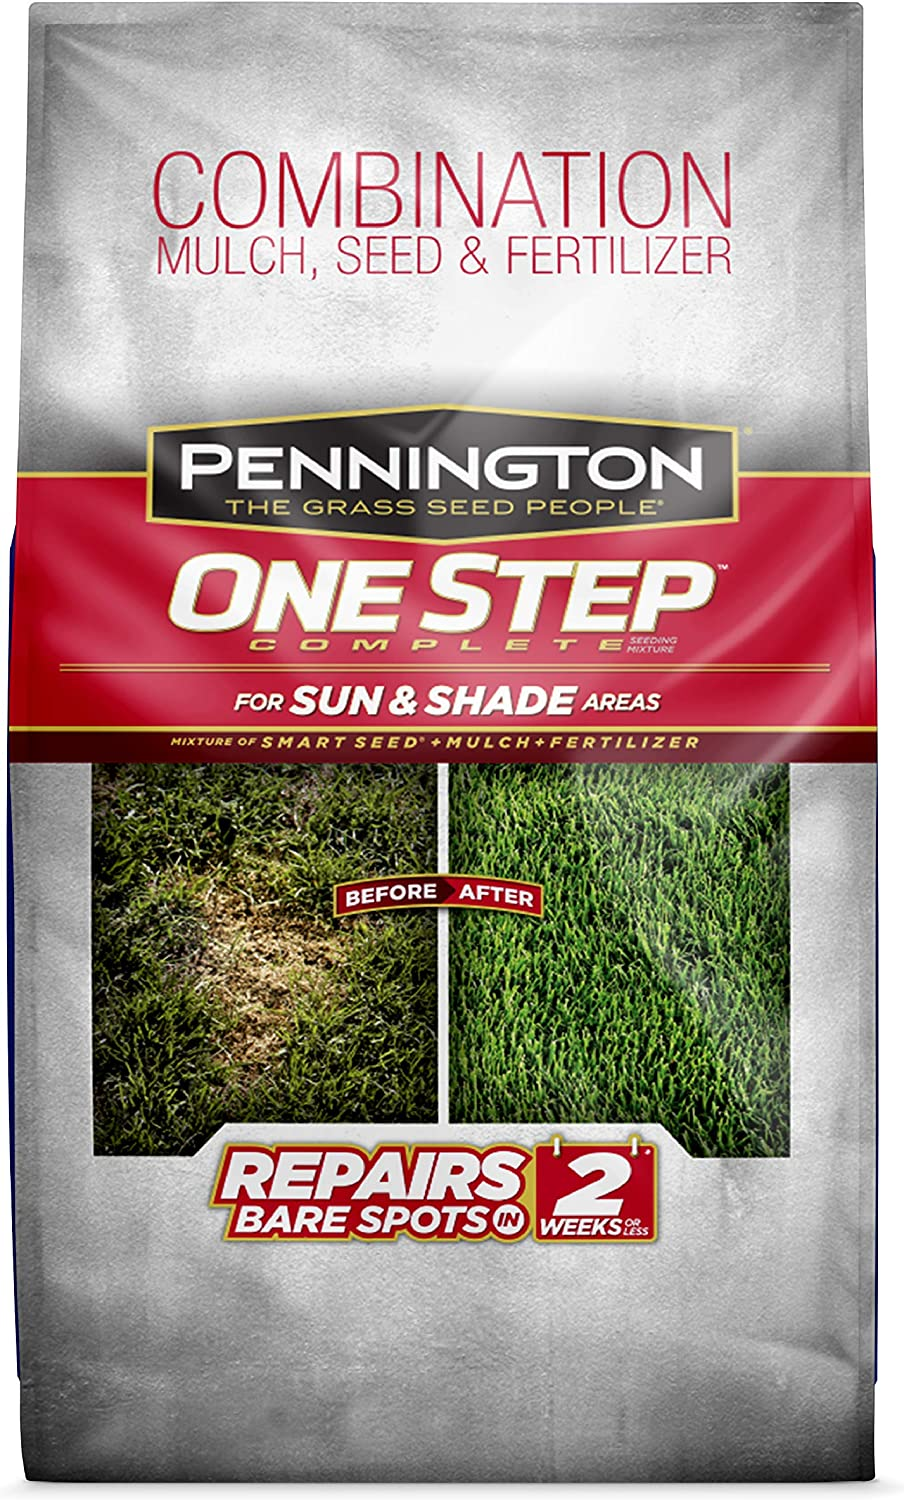 Pennington 100086822 One Step Complete Grass Seed For Sun & Shade Areas, 8.3 Pounds : Grass Plants : Garden & Outdoor